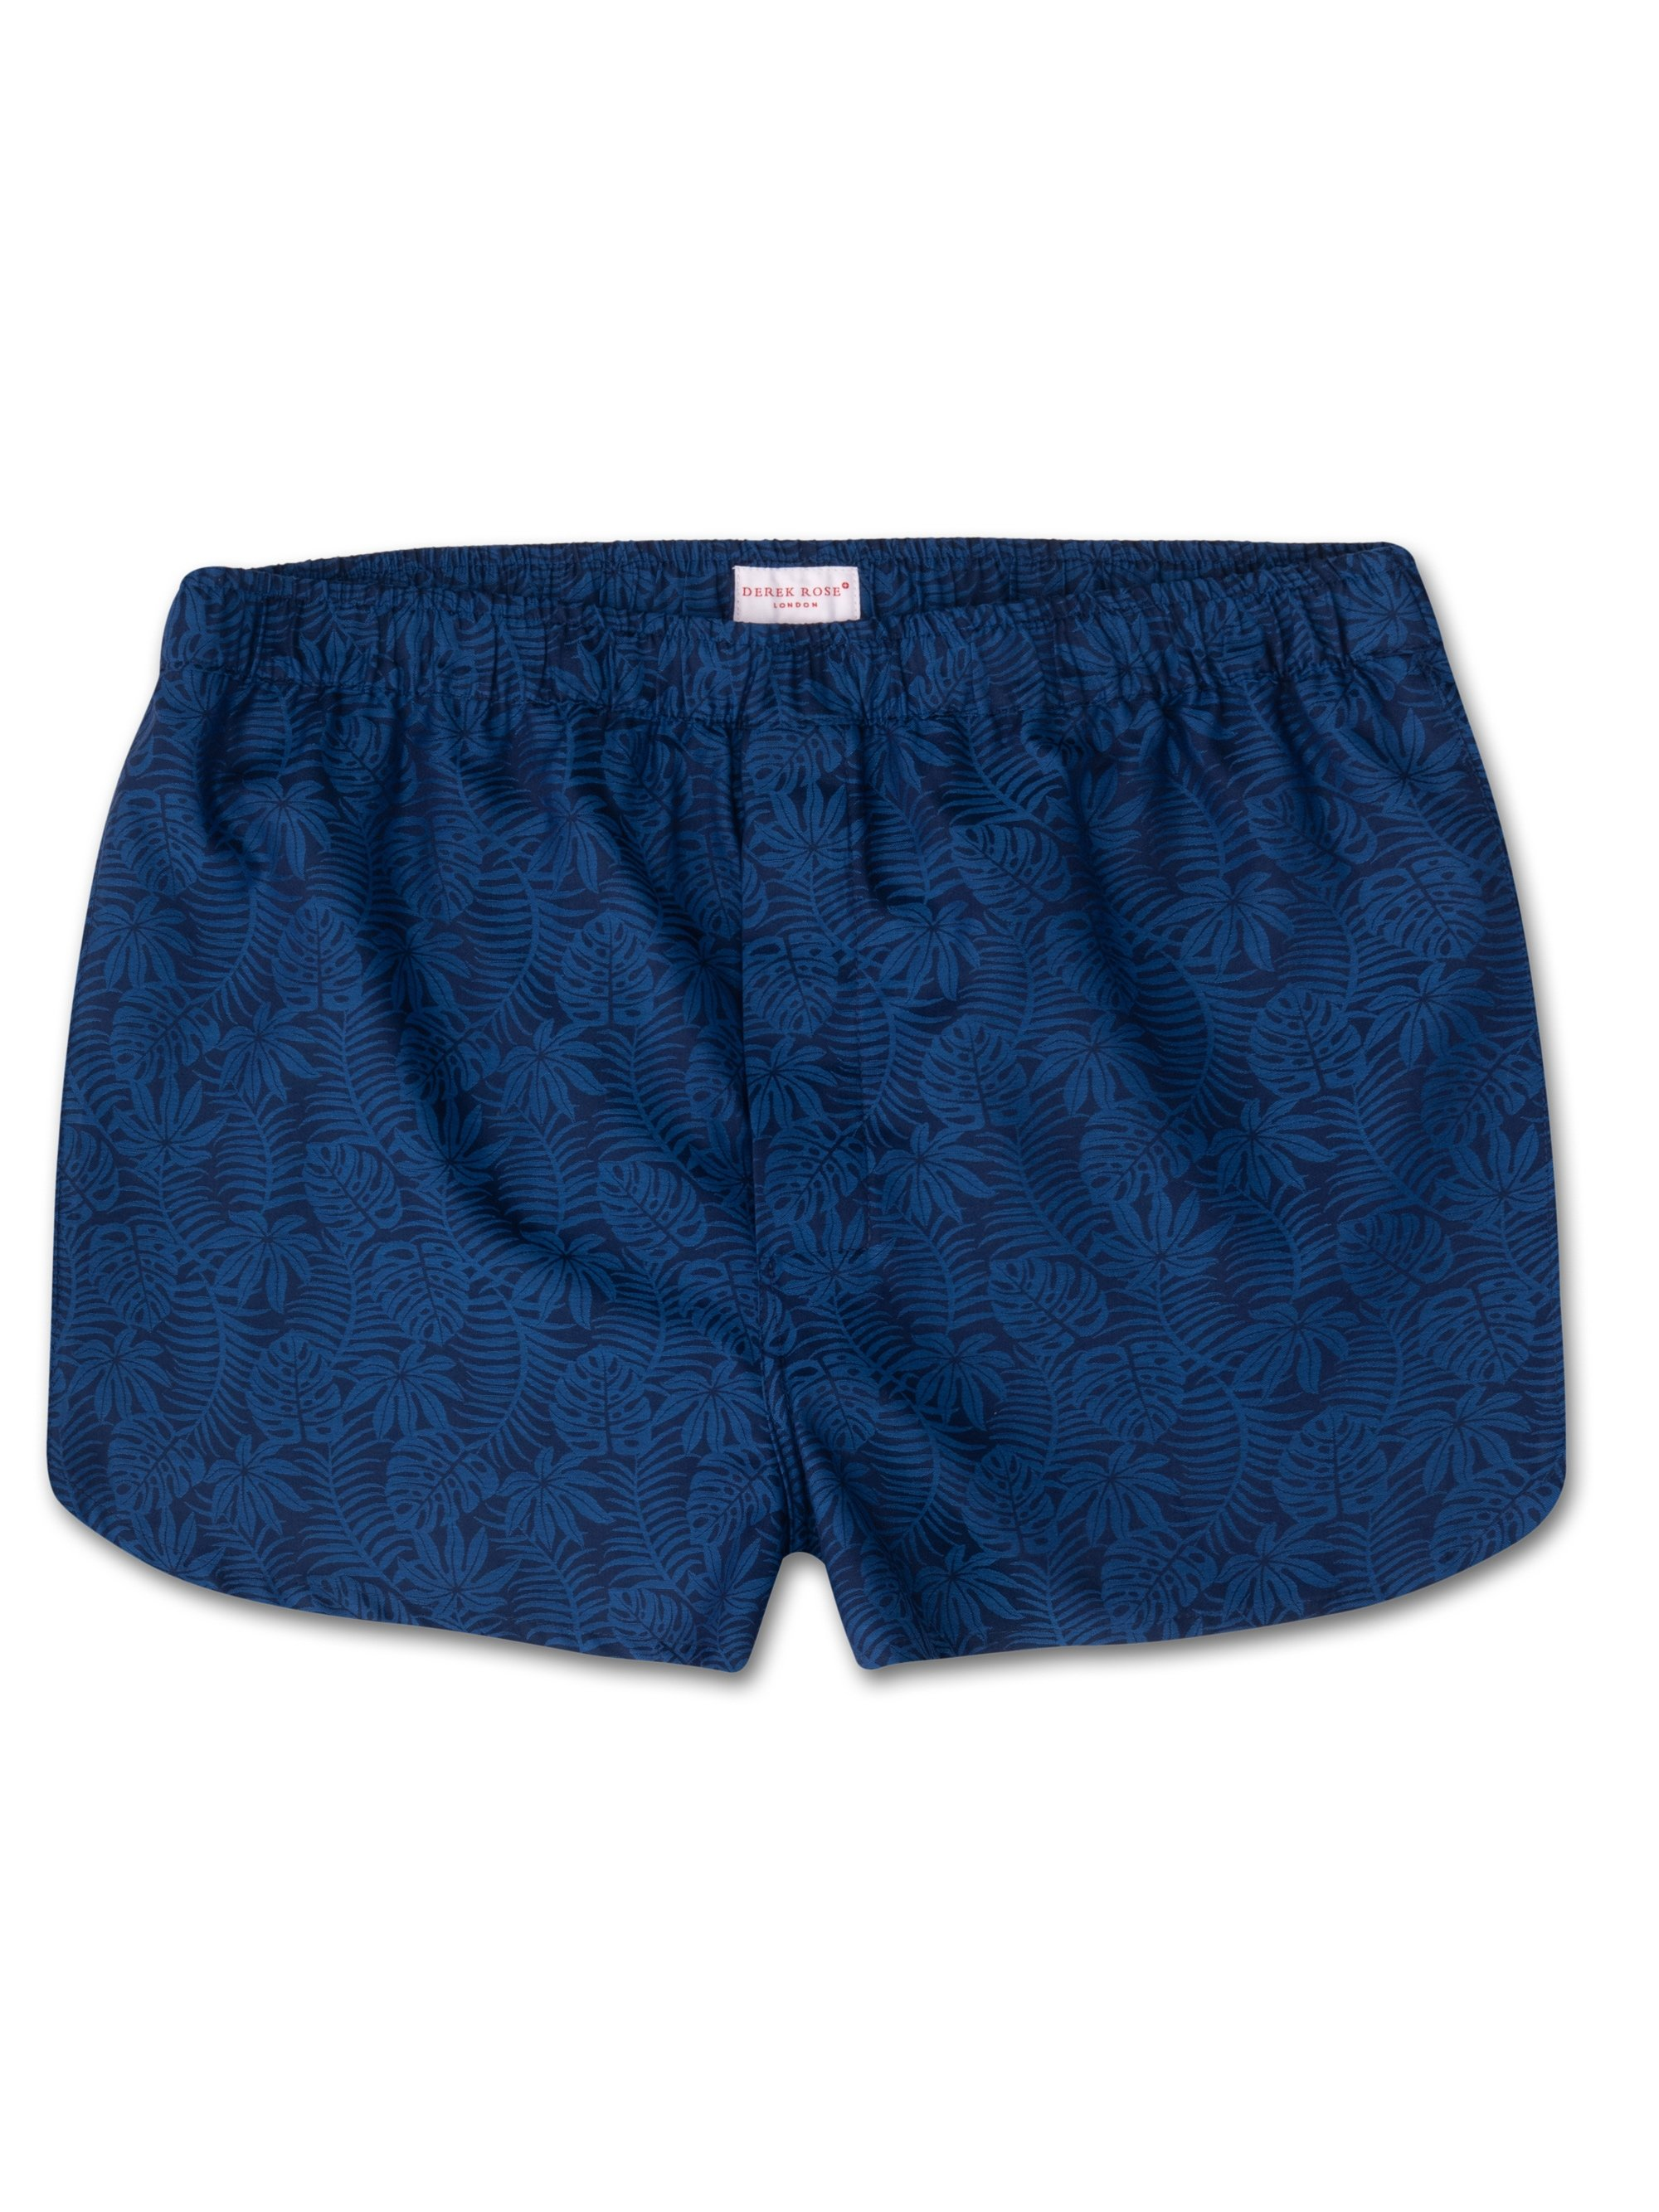 Men's Modern Fit Boxer Shorts Paris 15 Cotton Jacquard Navy